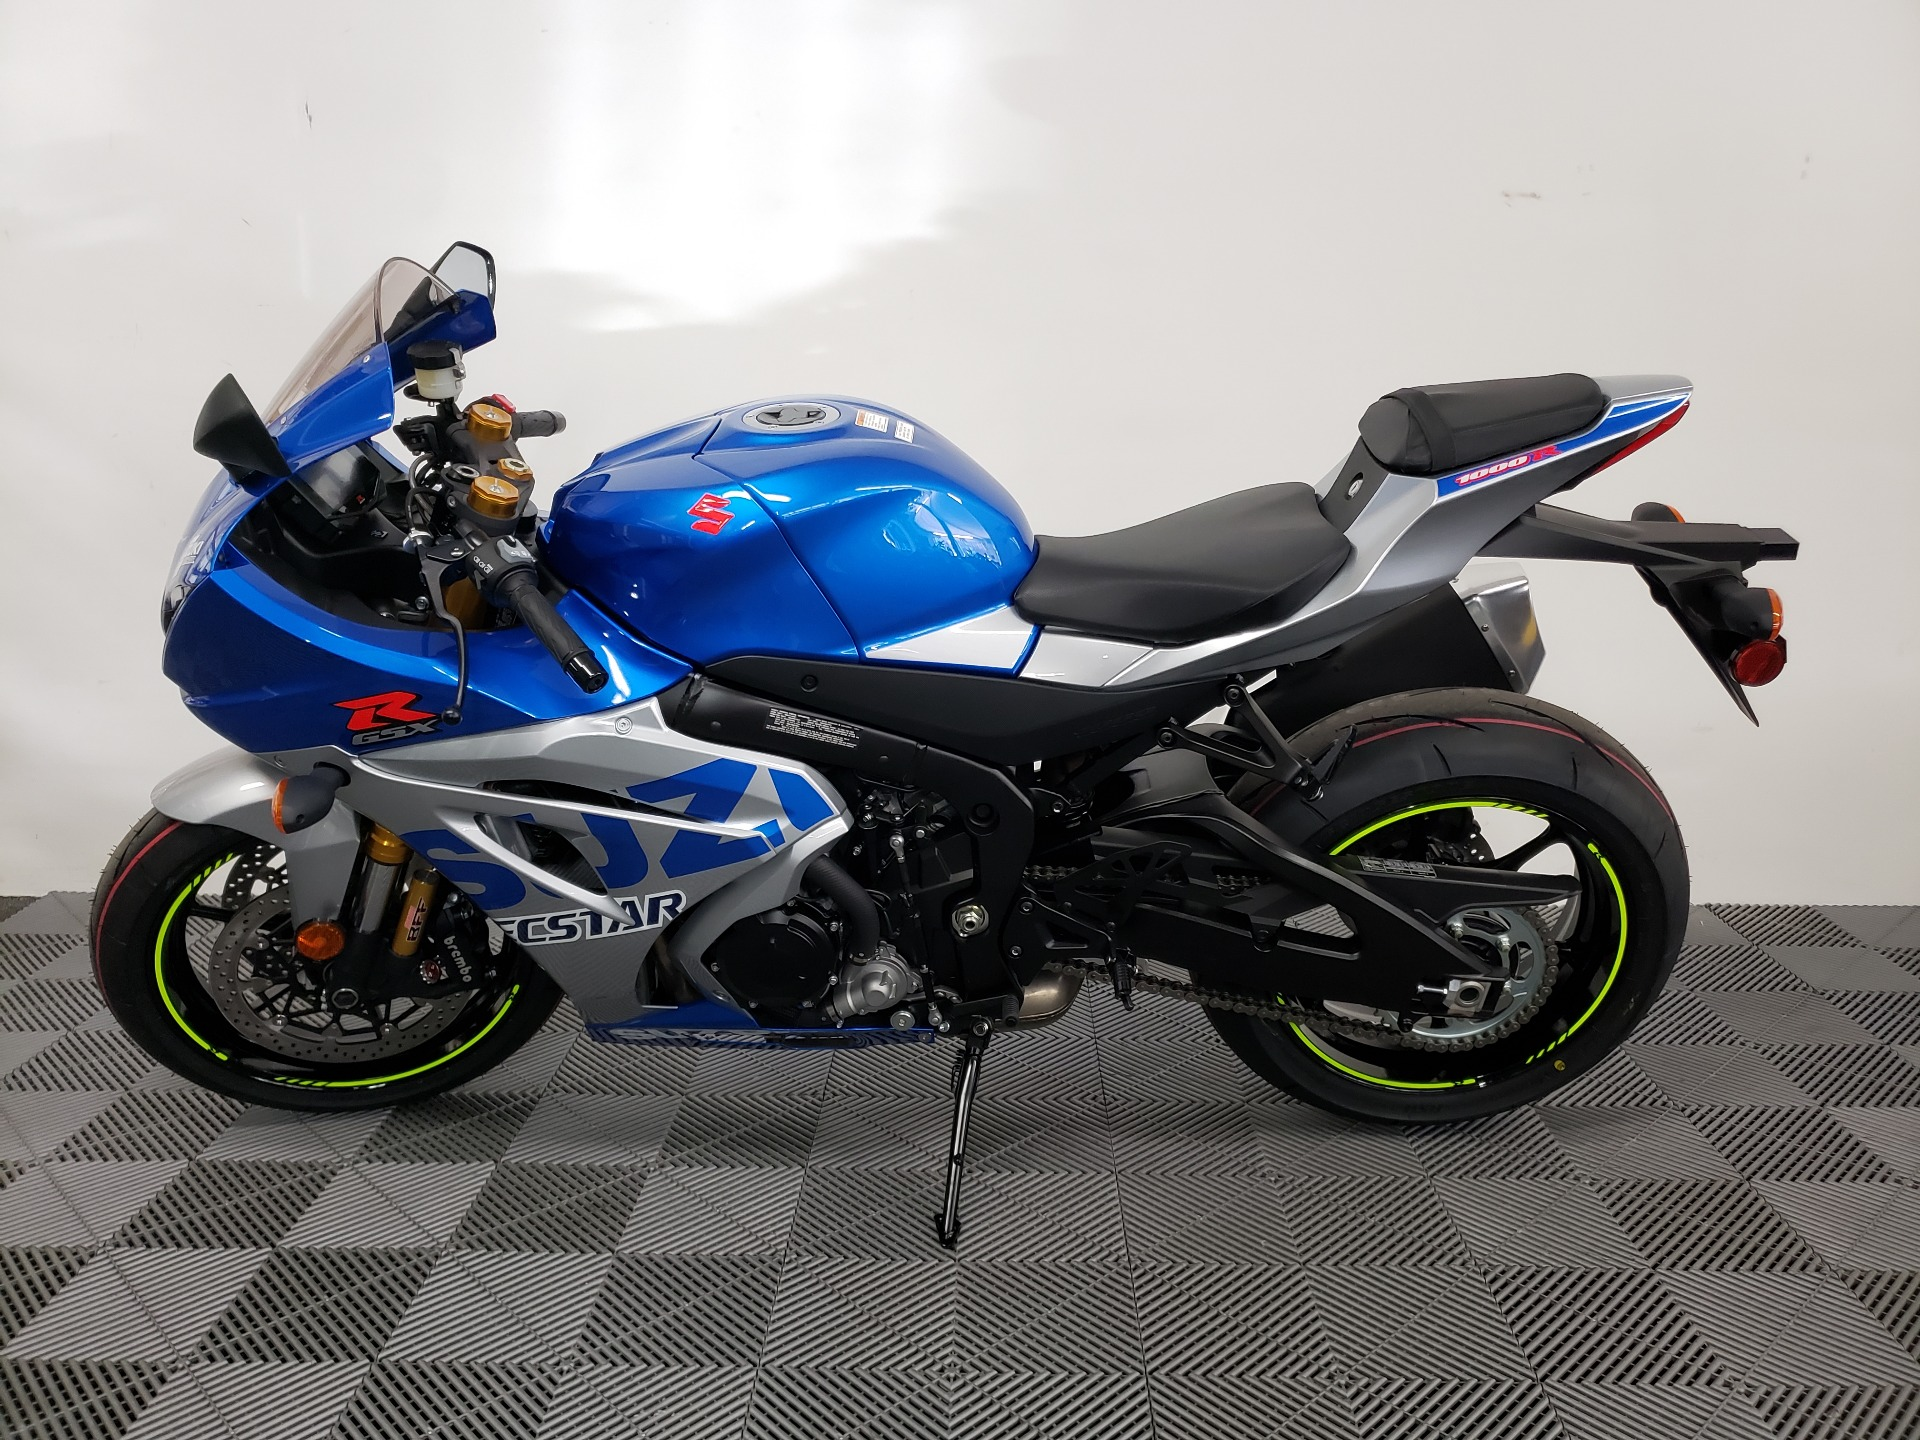 2021 Suzuki GSX-R1000R 100th Anniversary Edition in Van Nuys, California - Photo 7